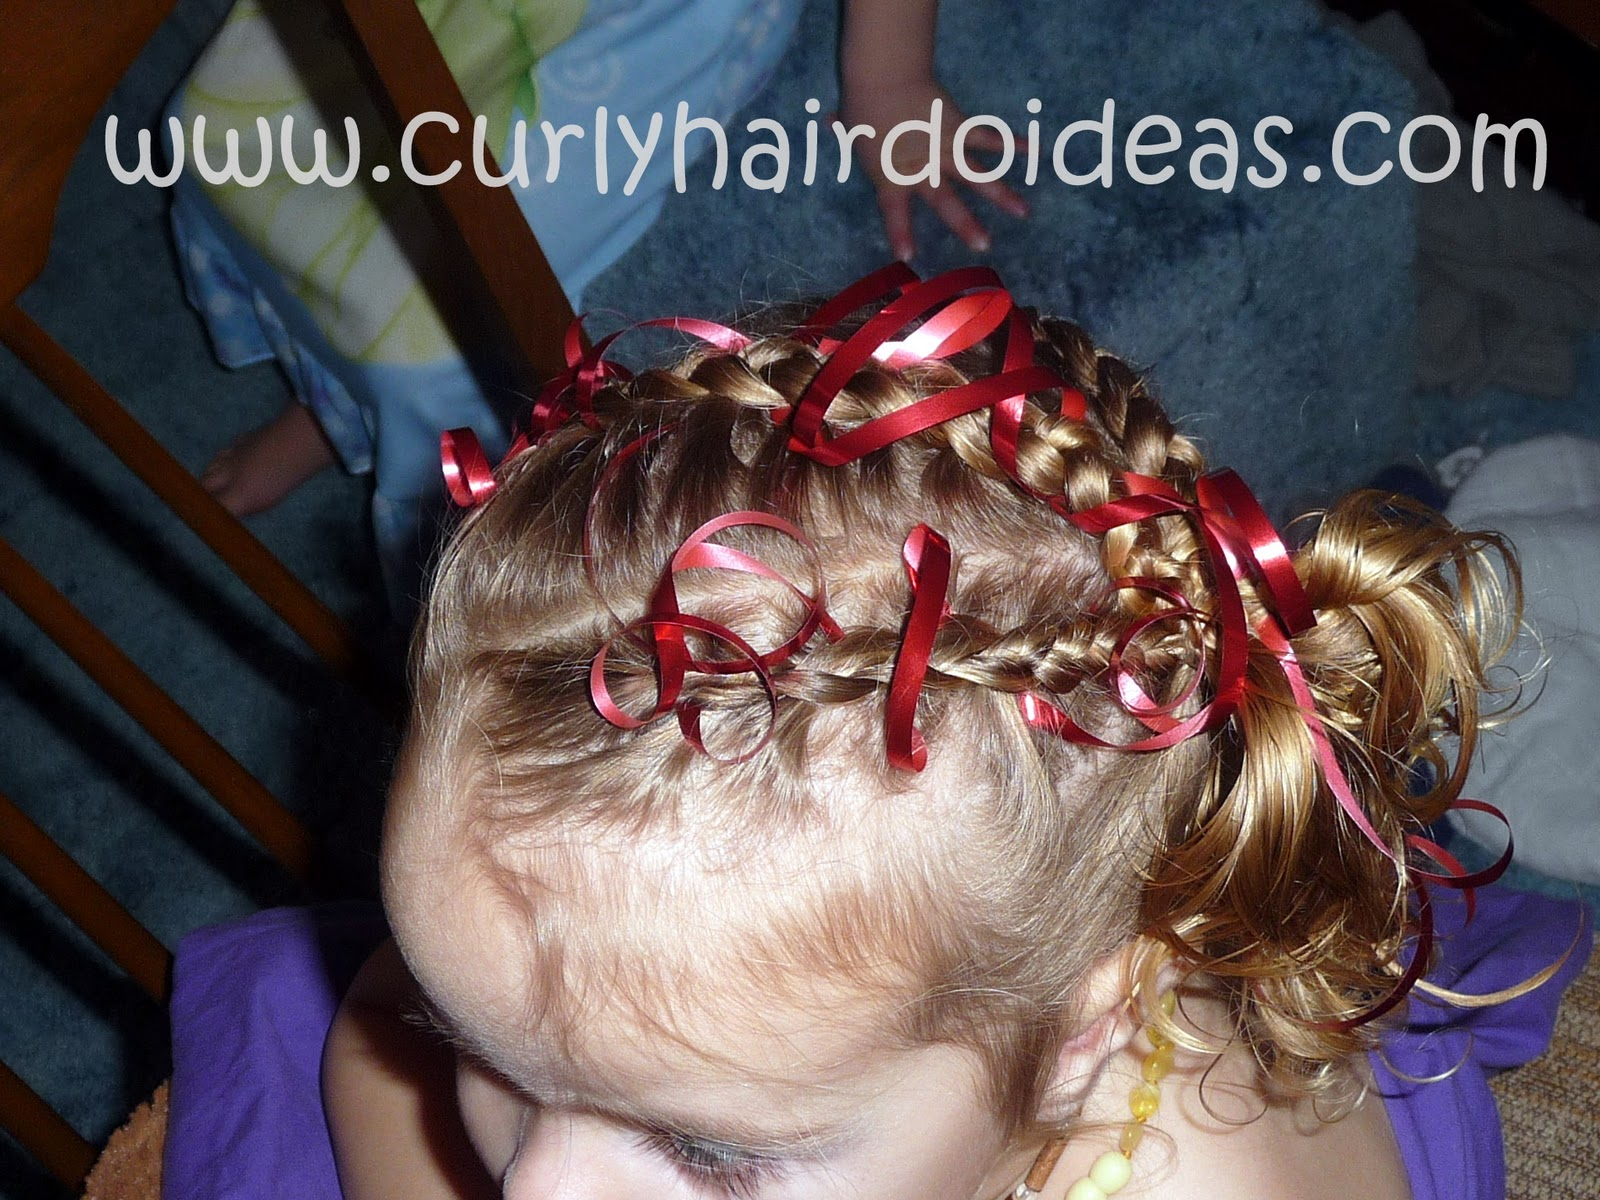 Christmas Braids and Ribbon Hairstyle for Kids. 1600 x 1200.Hairstyles Braids Children